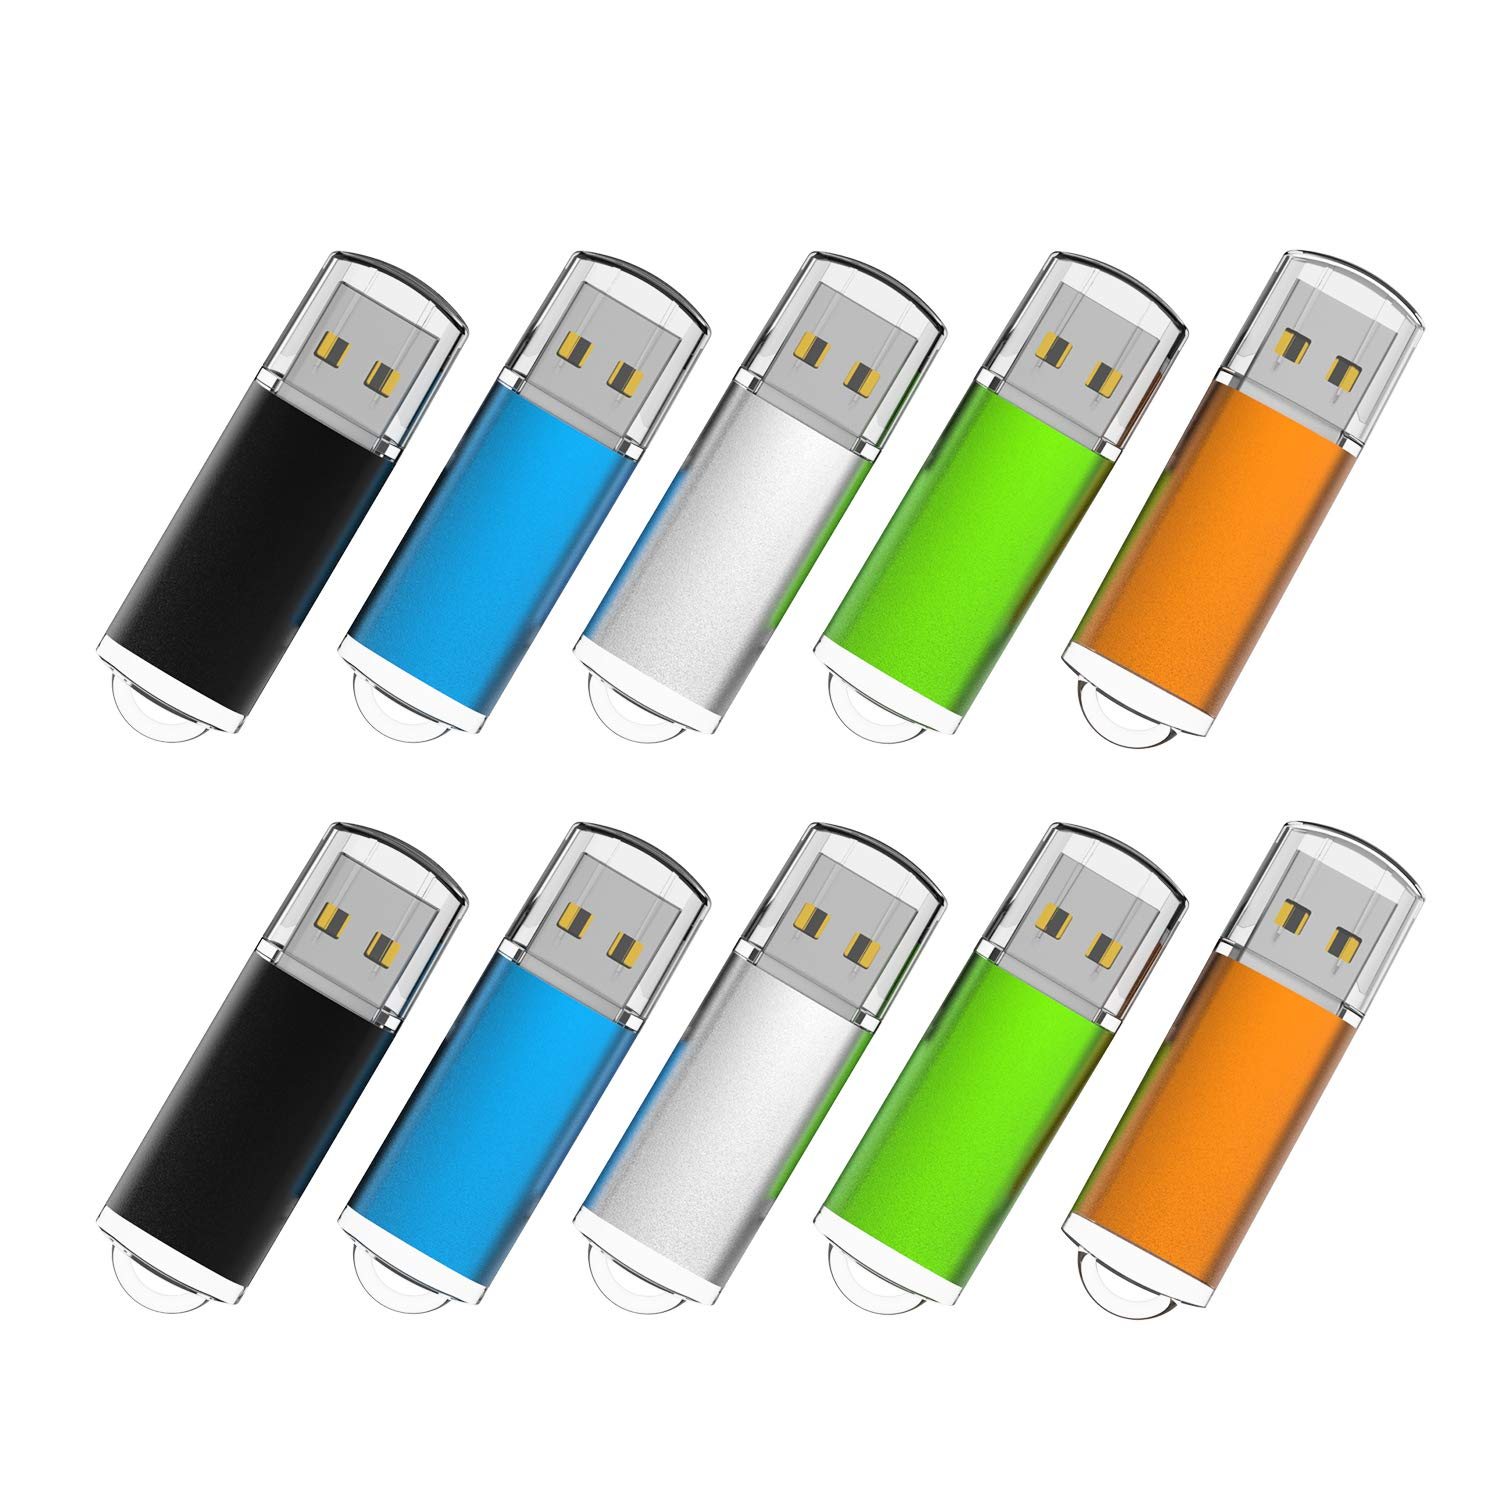 RAOYI 10PCS 64GB Bulk USB Flash Drives Thumb Drives Fold Storage Memory Stick USB 2.0 Jump Drive(5 Mixed Colors: Black Blue Green Orange Silver)